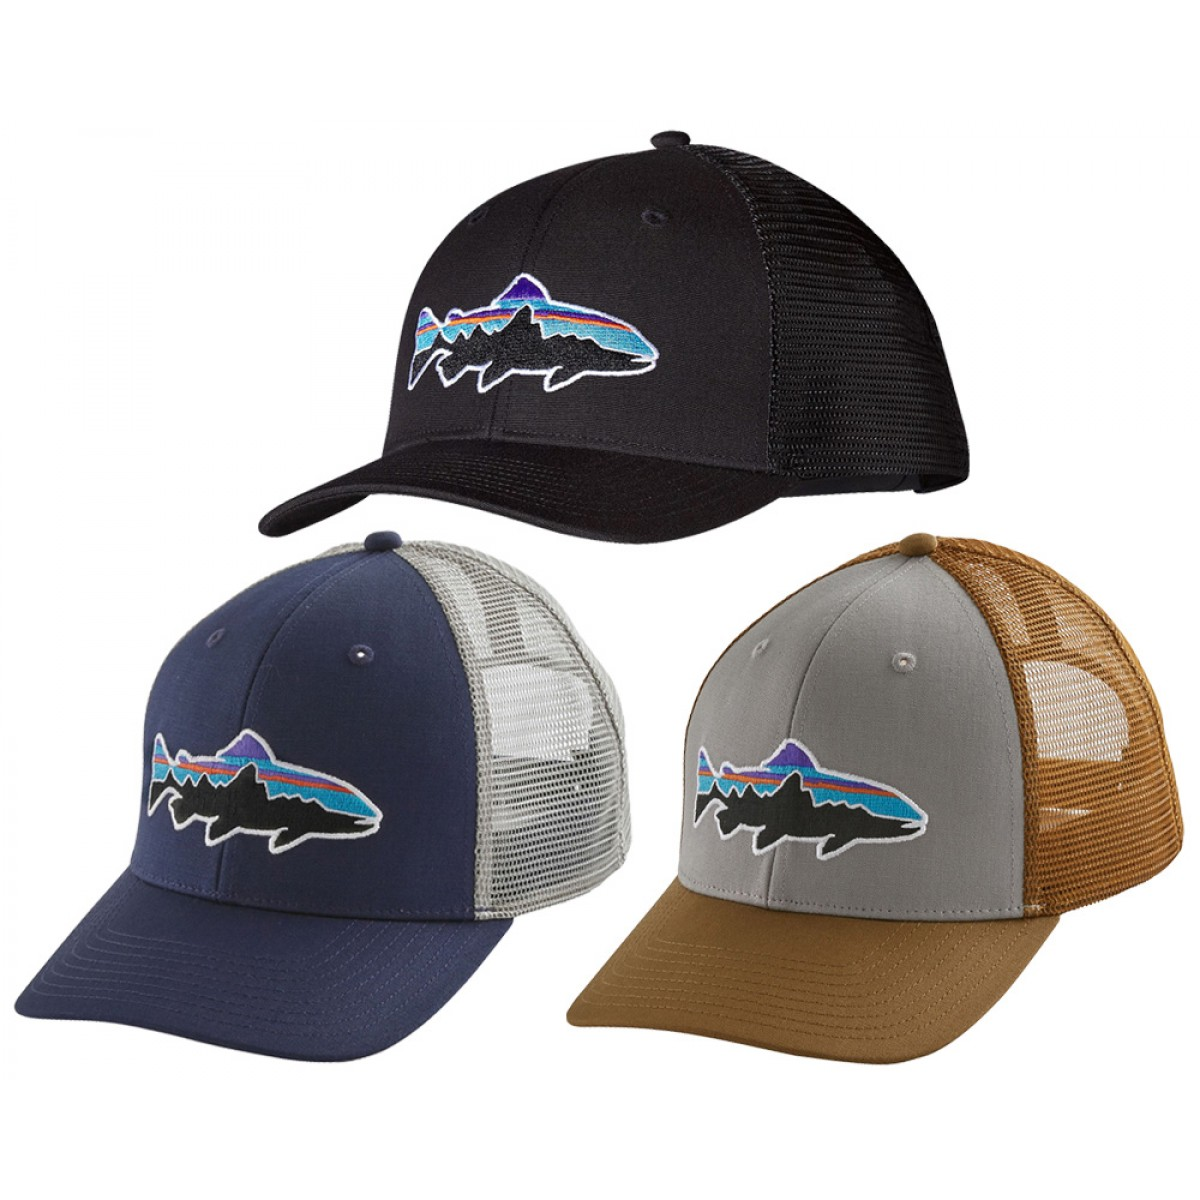 separation shoes 69b33 85fa3 Patagonia Fitz Roy Trout Trucker Hat